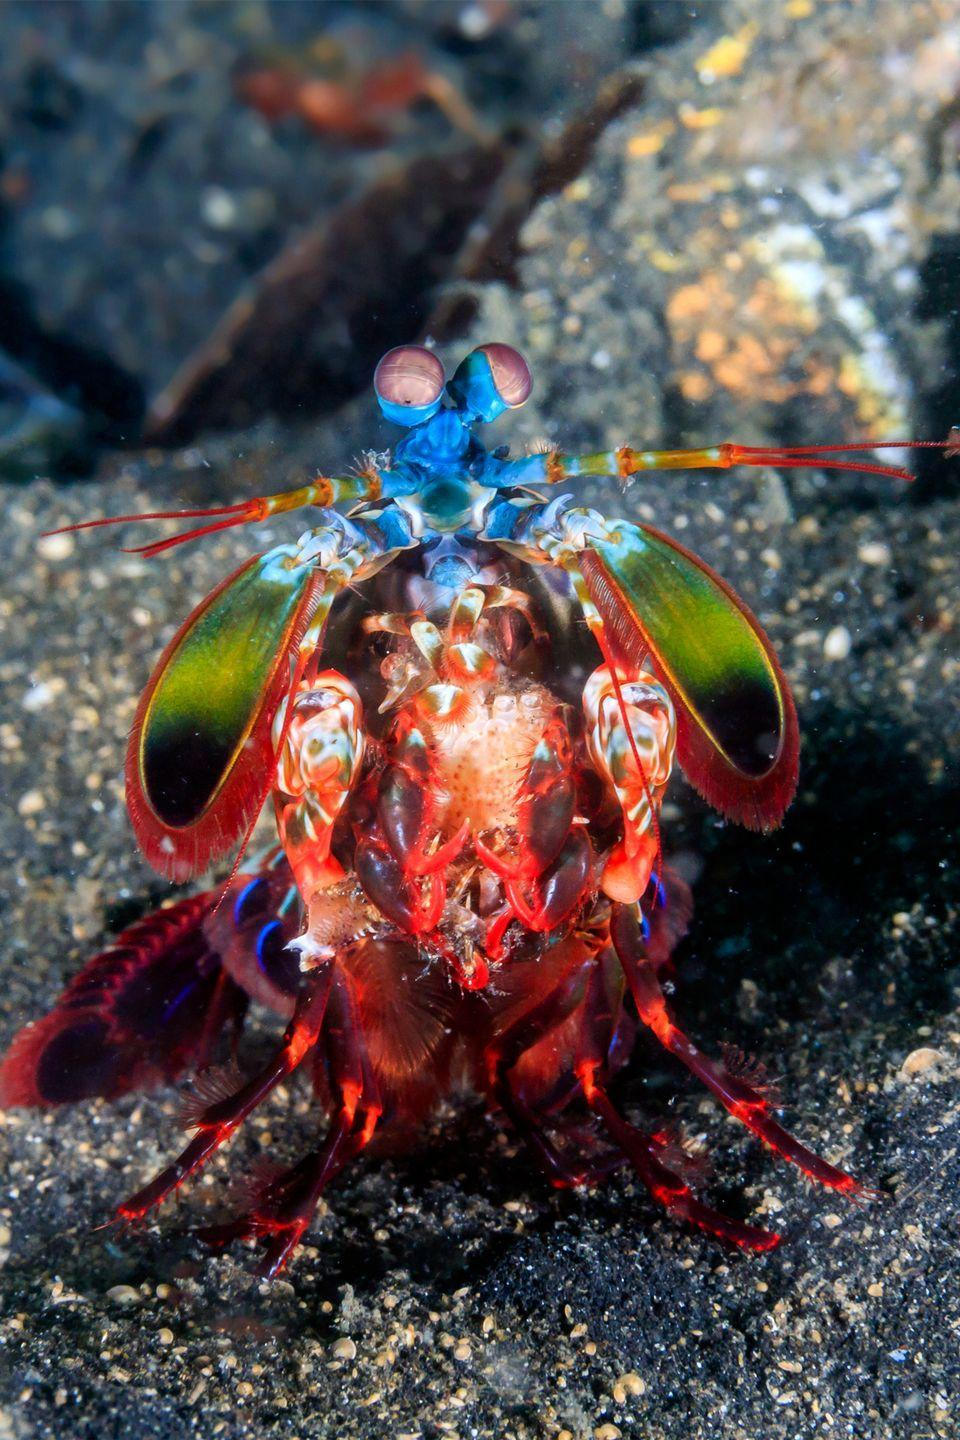 <p>The peacock mantis shrimp, a relative of crabs and lobsters, throws a punch at 50 mph, which is faster than a .22 caliber bullet. It uses its punch to impale soft-bodied prey like fish. And since it lives in overcrowded and competitive rock crevices, researchers believe it developed this strength to out-maneuver other hunters.</p>